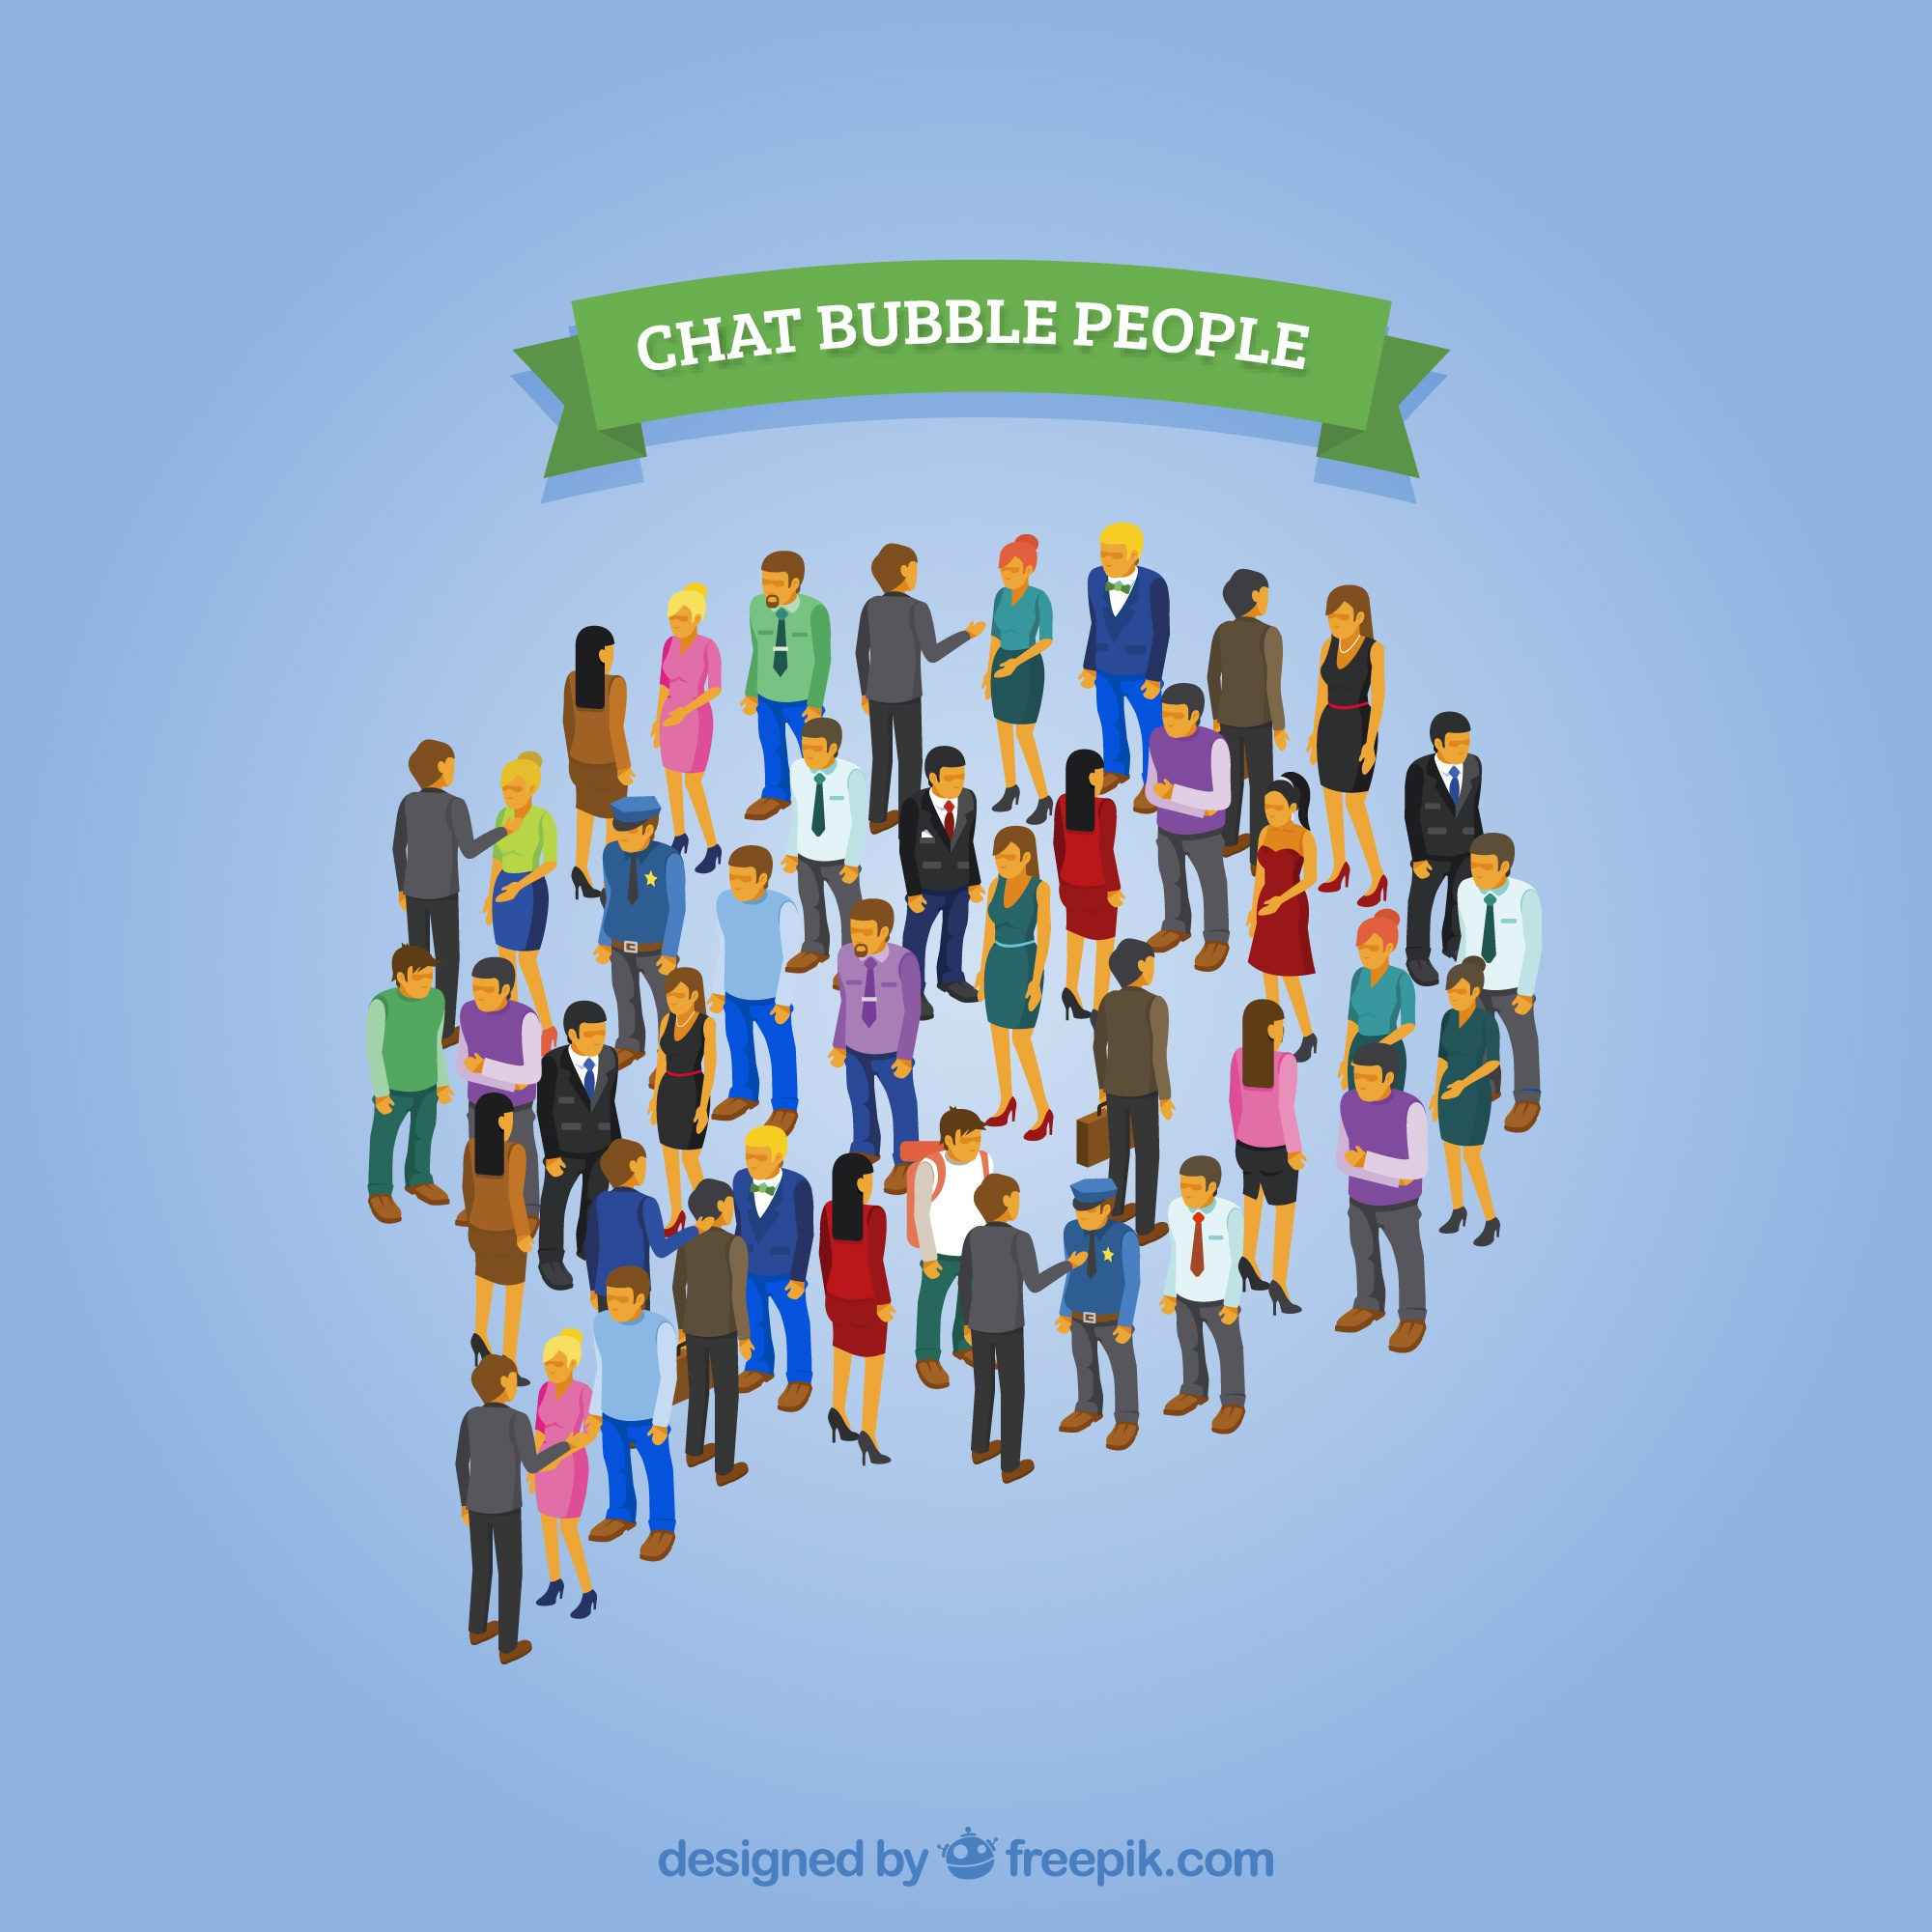 Chat bubble people design